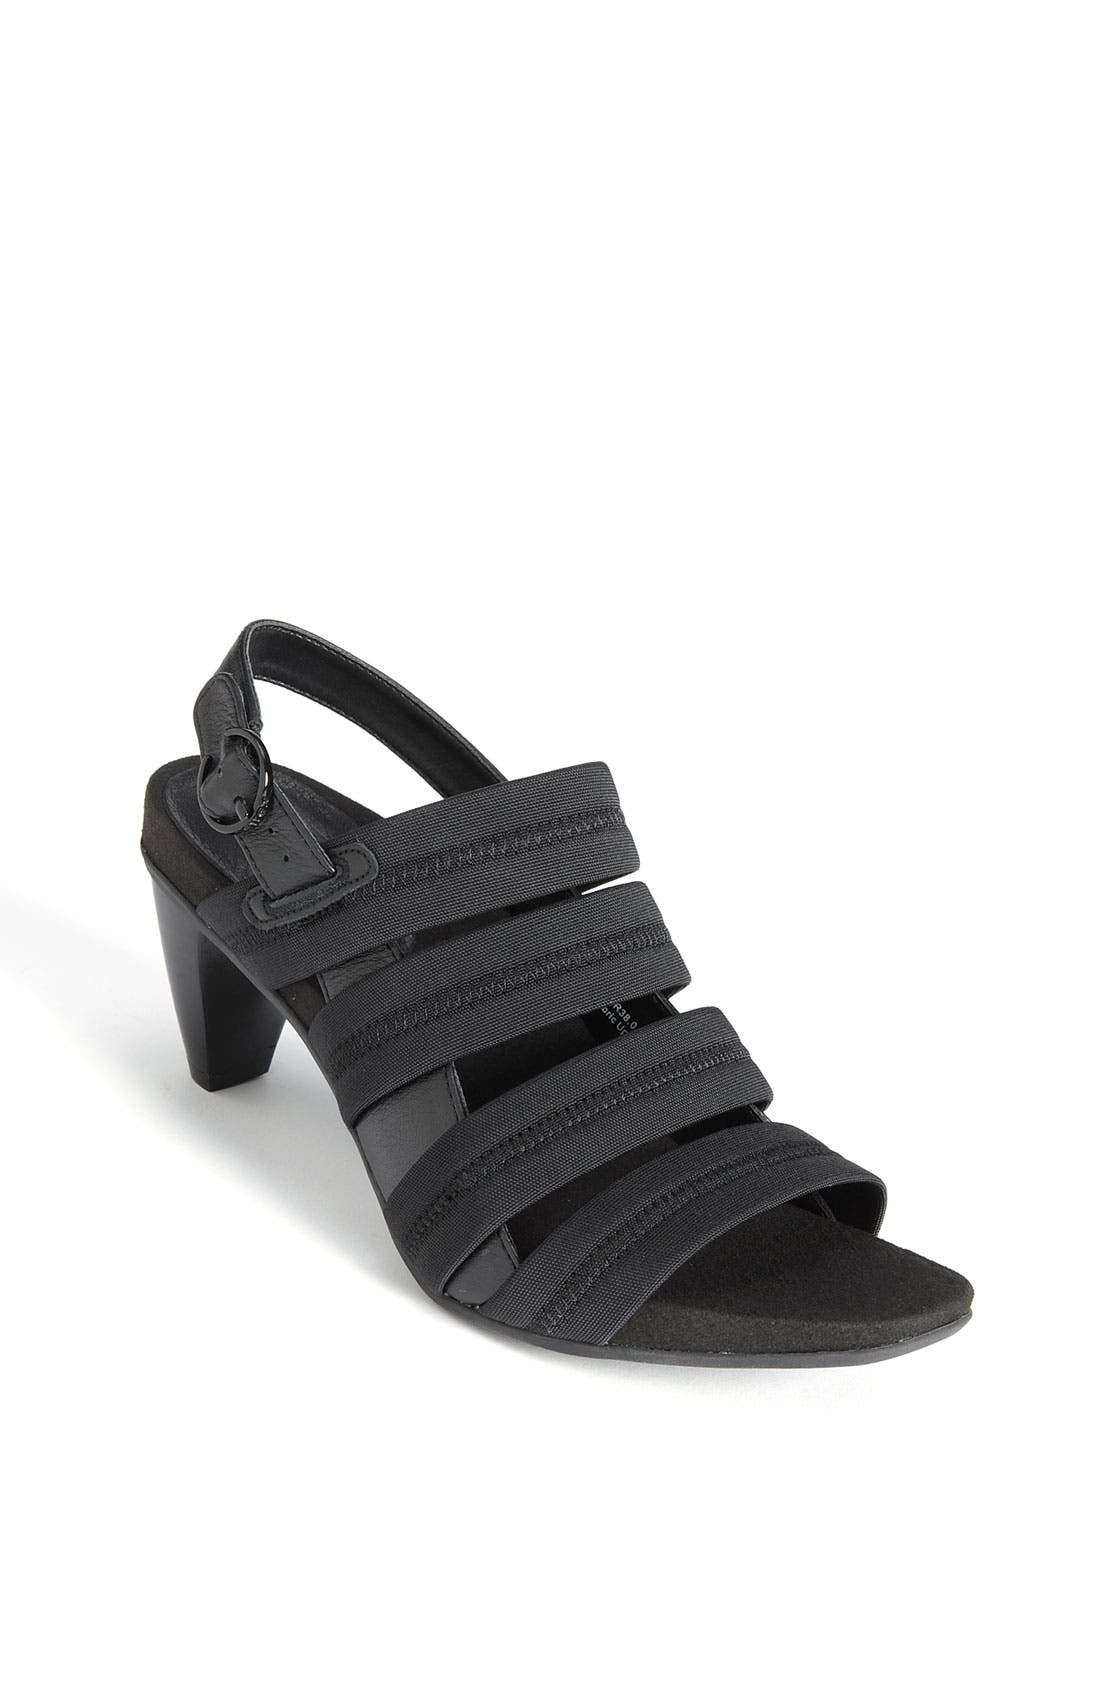 Alternate Image 1 Selected - Aetrex 'Veronica' Sandal